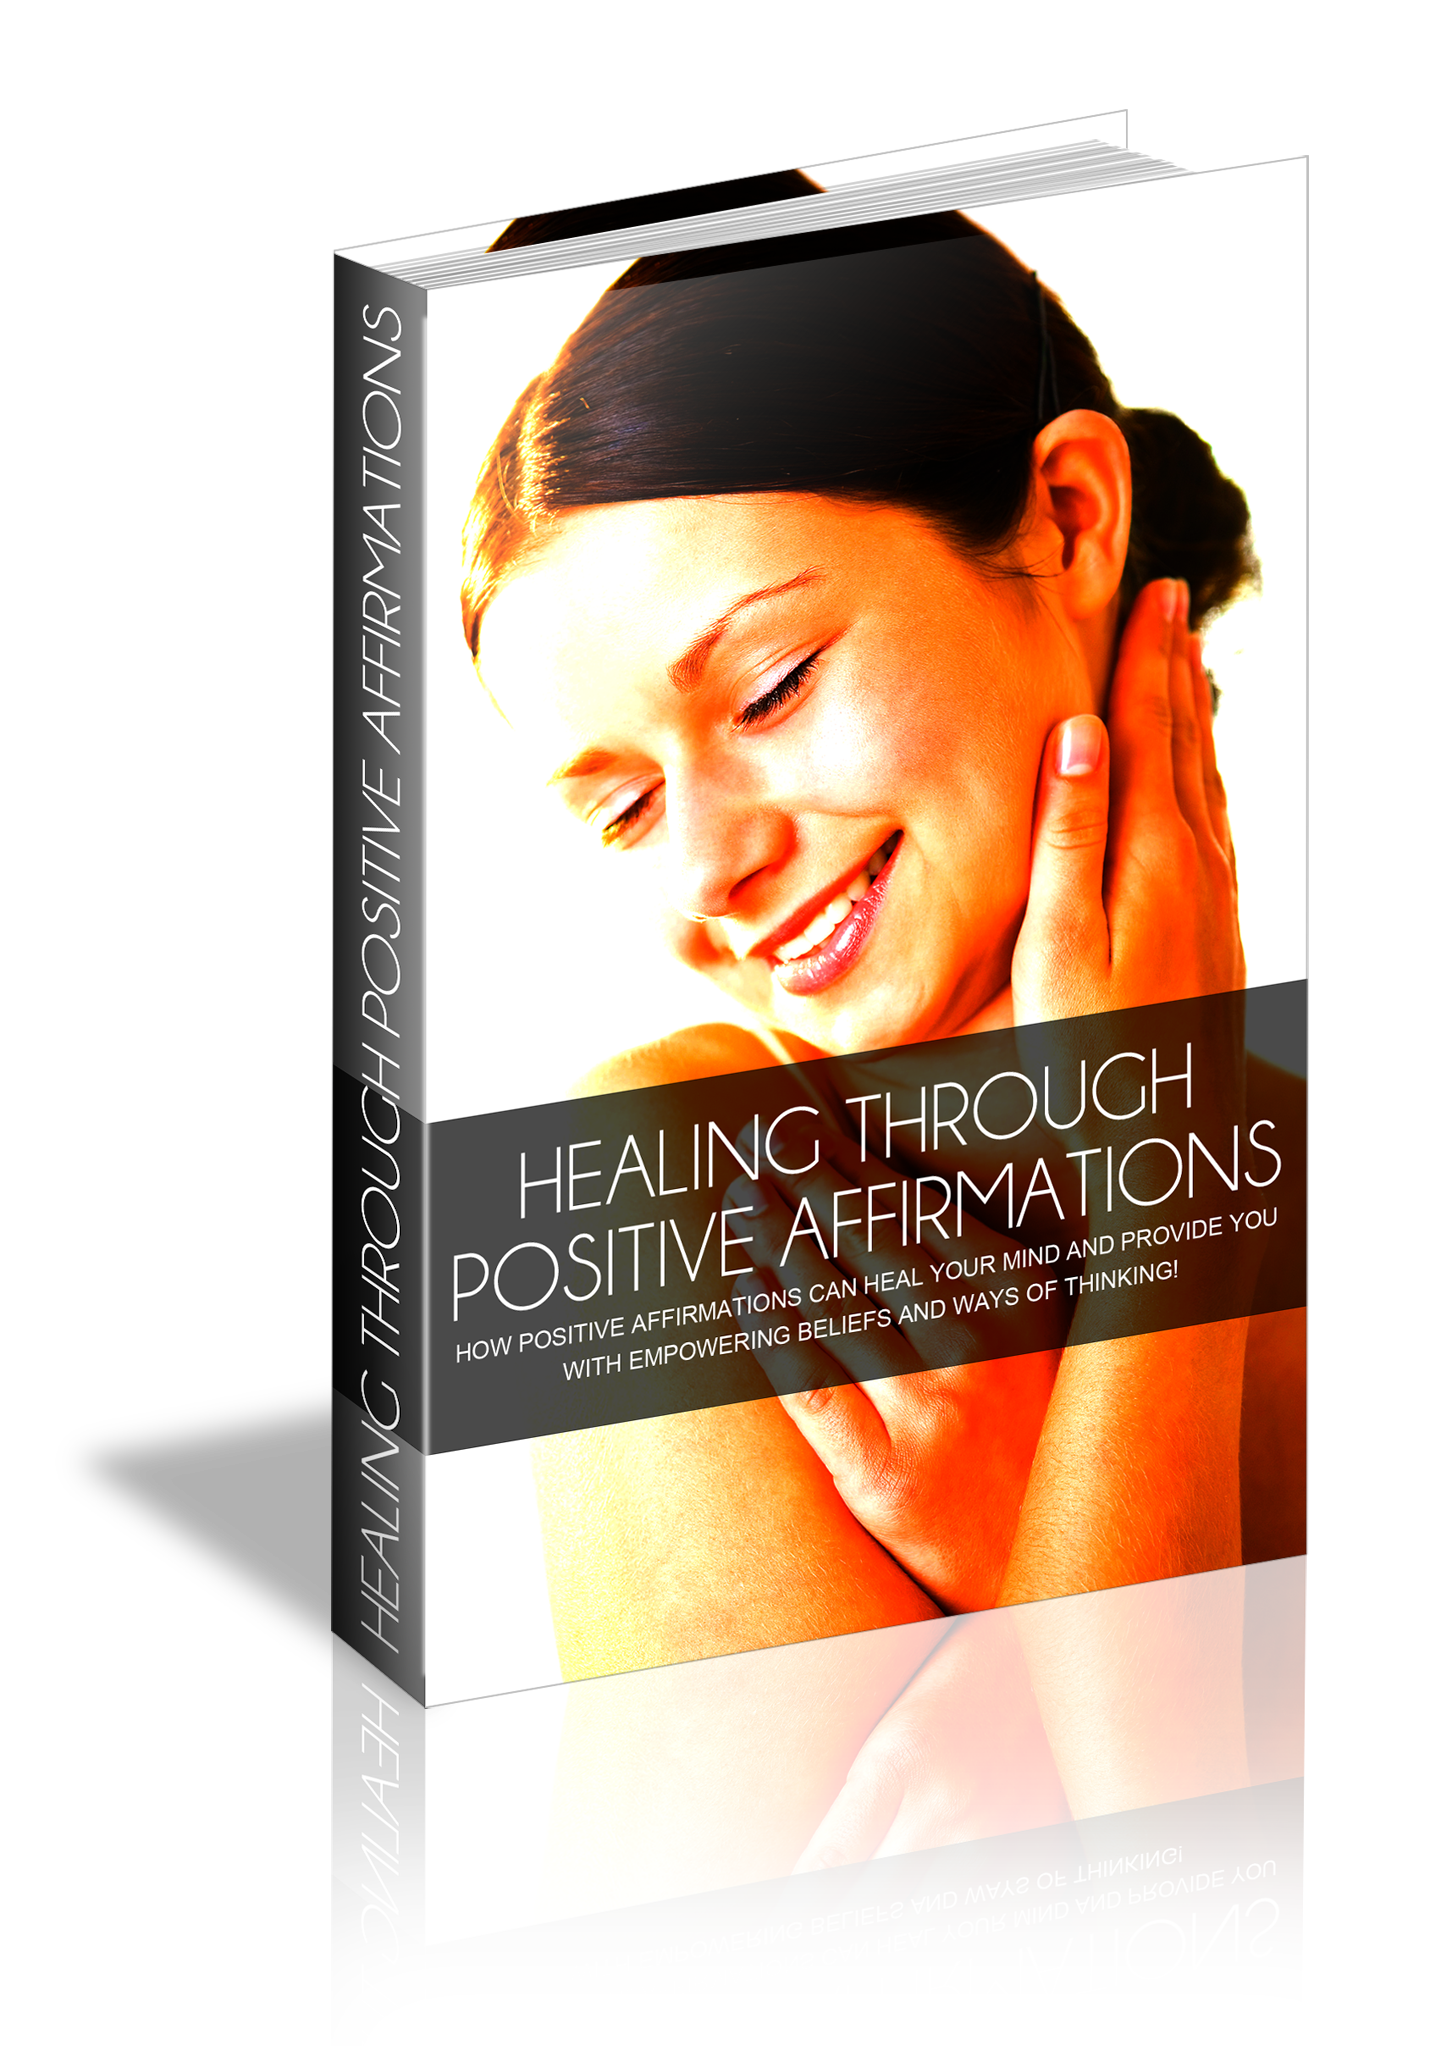 Positive Affirmations Using Them For Healing e-Book